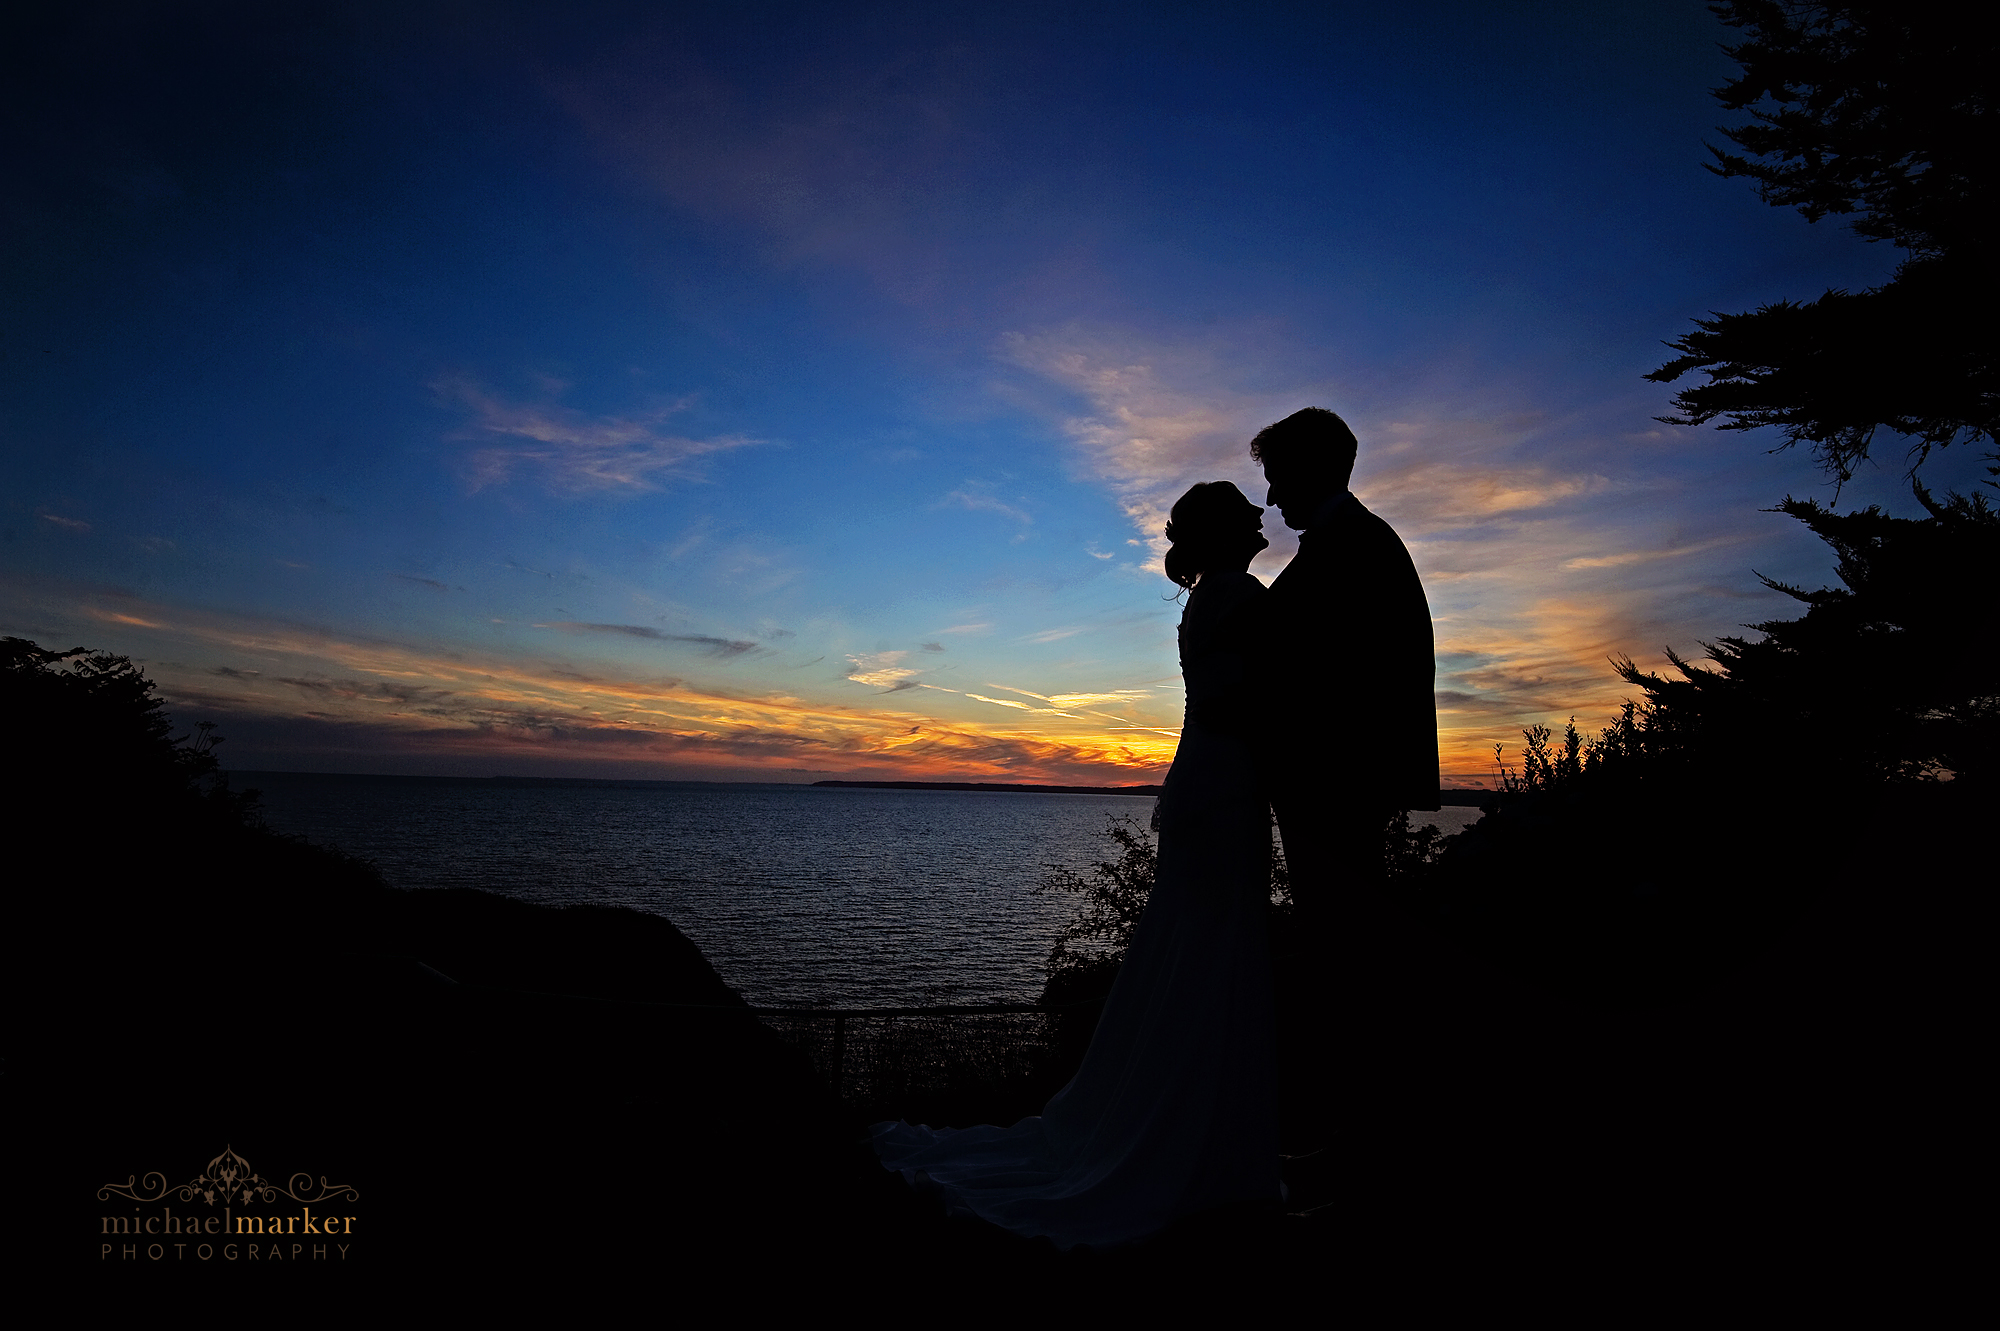 Bride and groom sunset silhouette embracing at Polhawn Fort